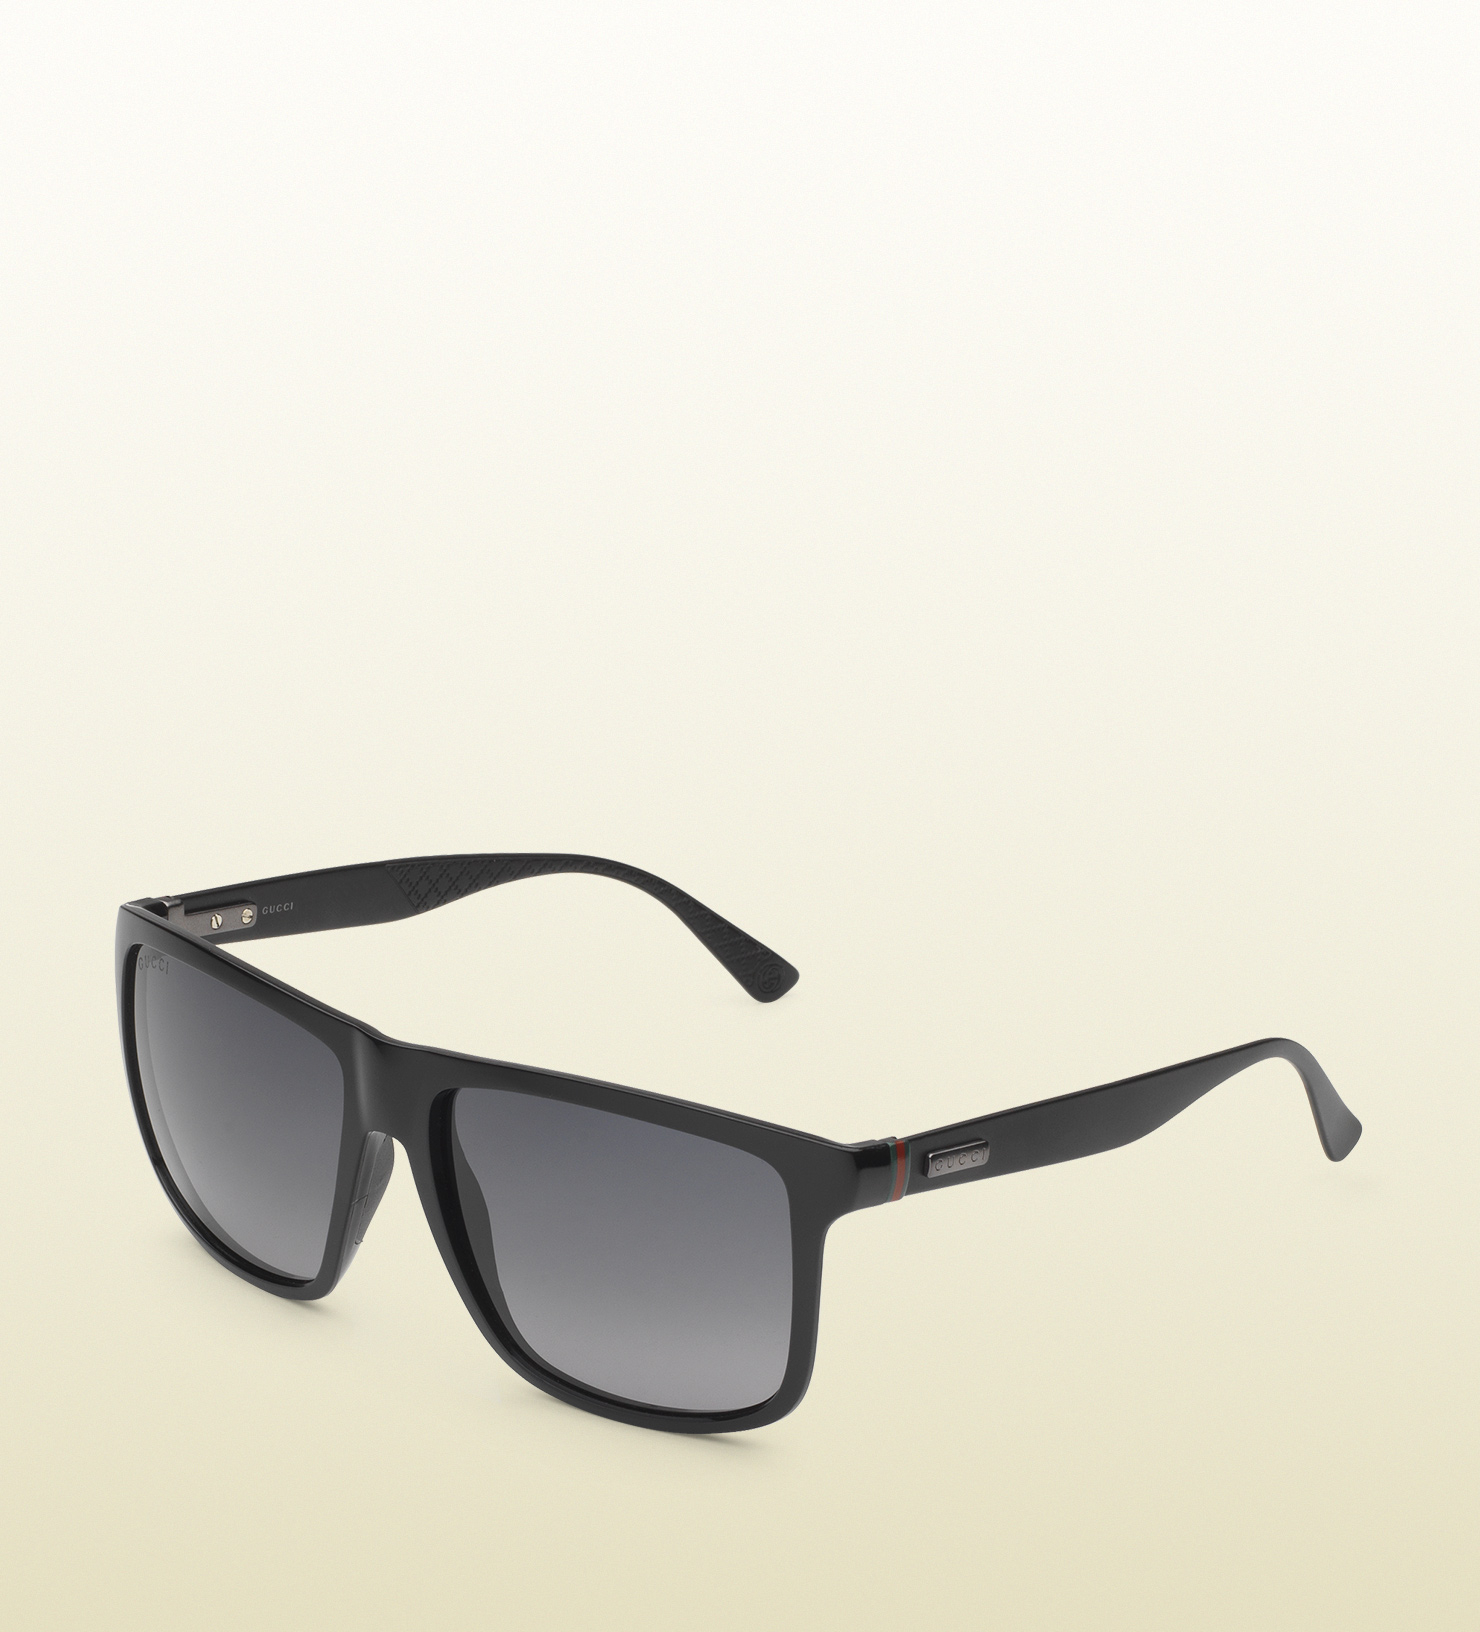 8063cbbbba75f Lyst - Gucci Square-frame Aluminum And Injected Sunglasses in Black ...